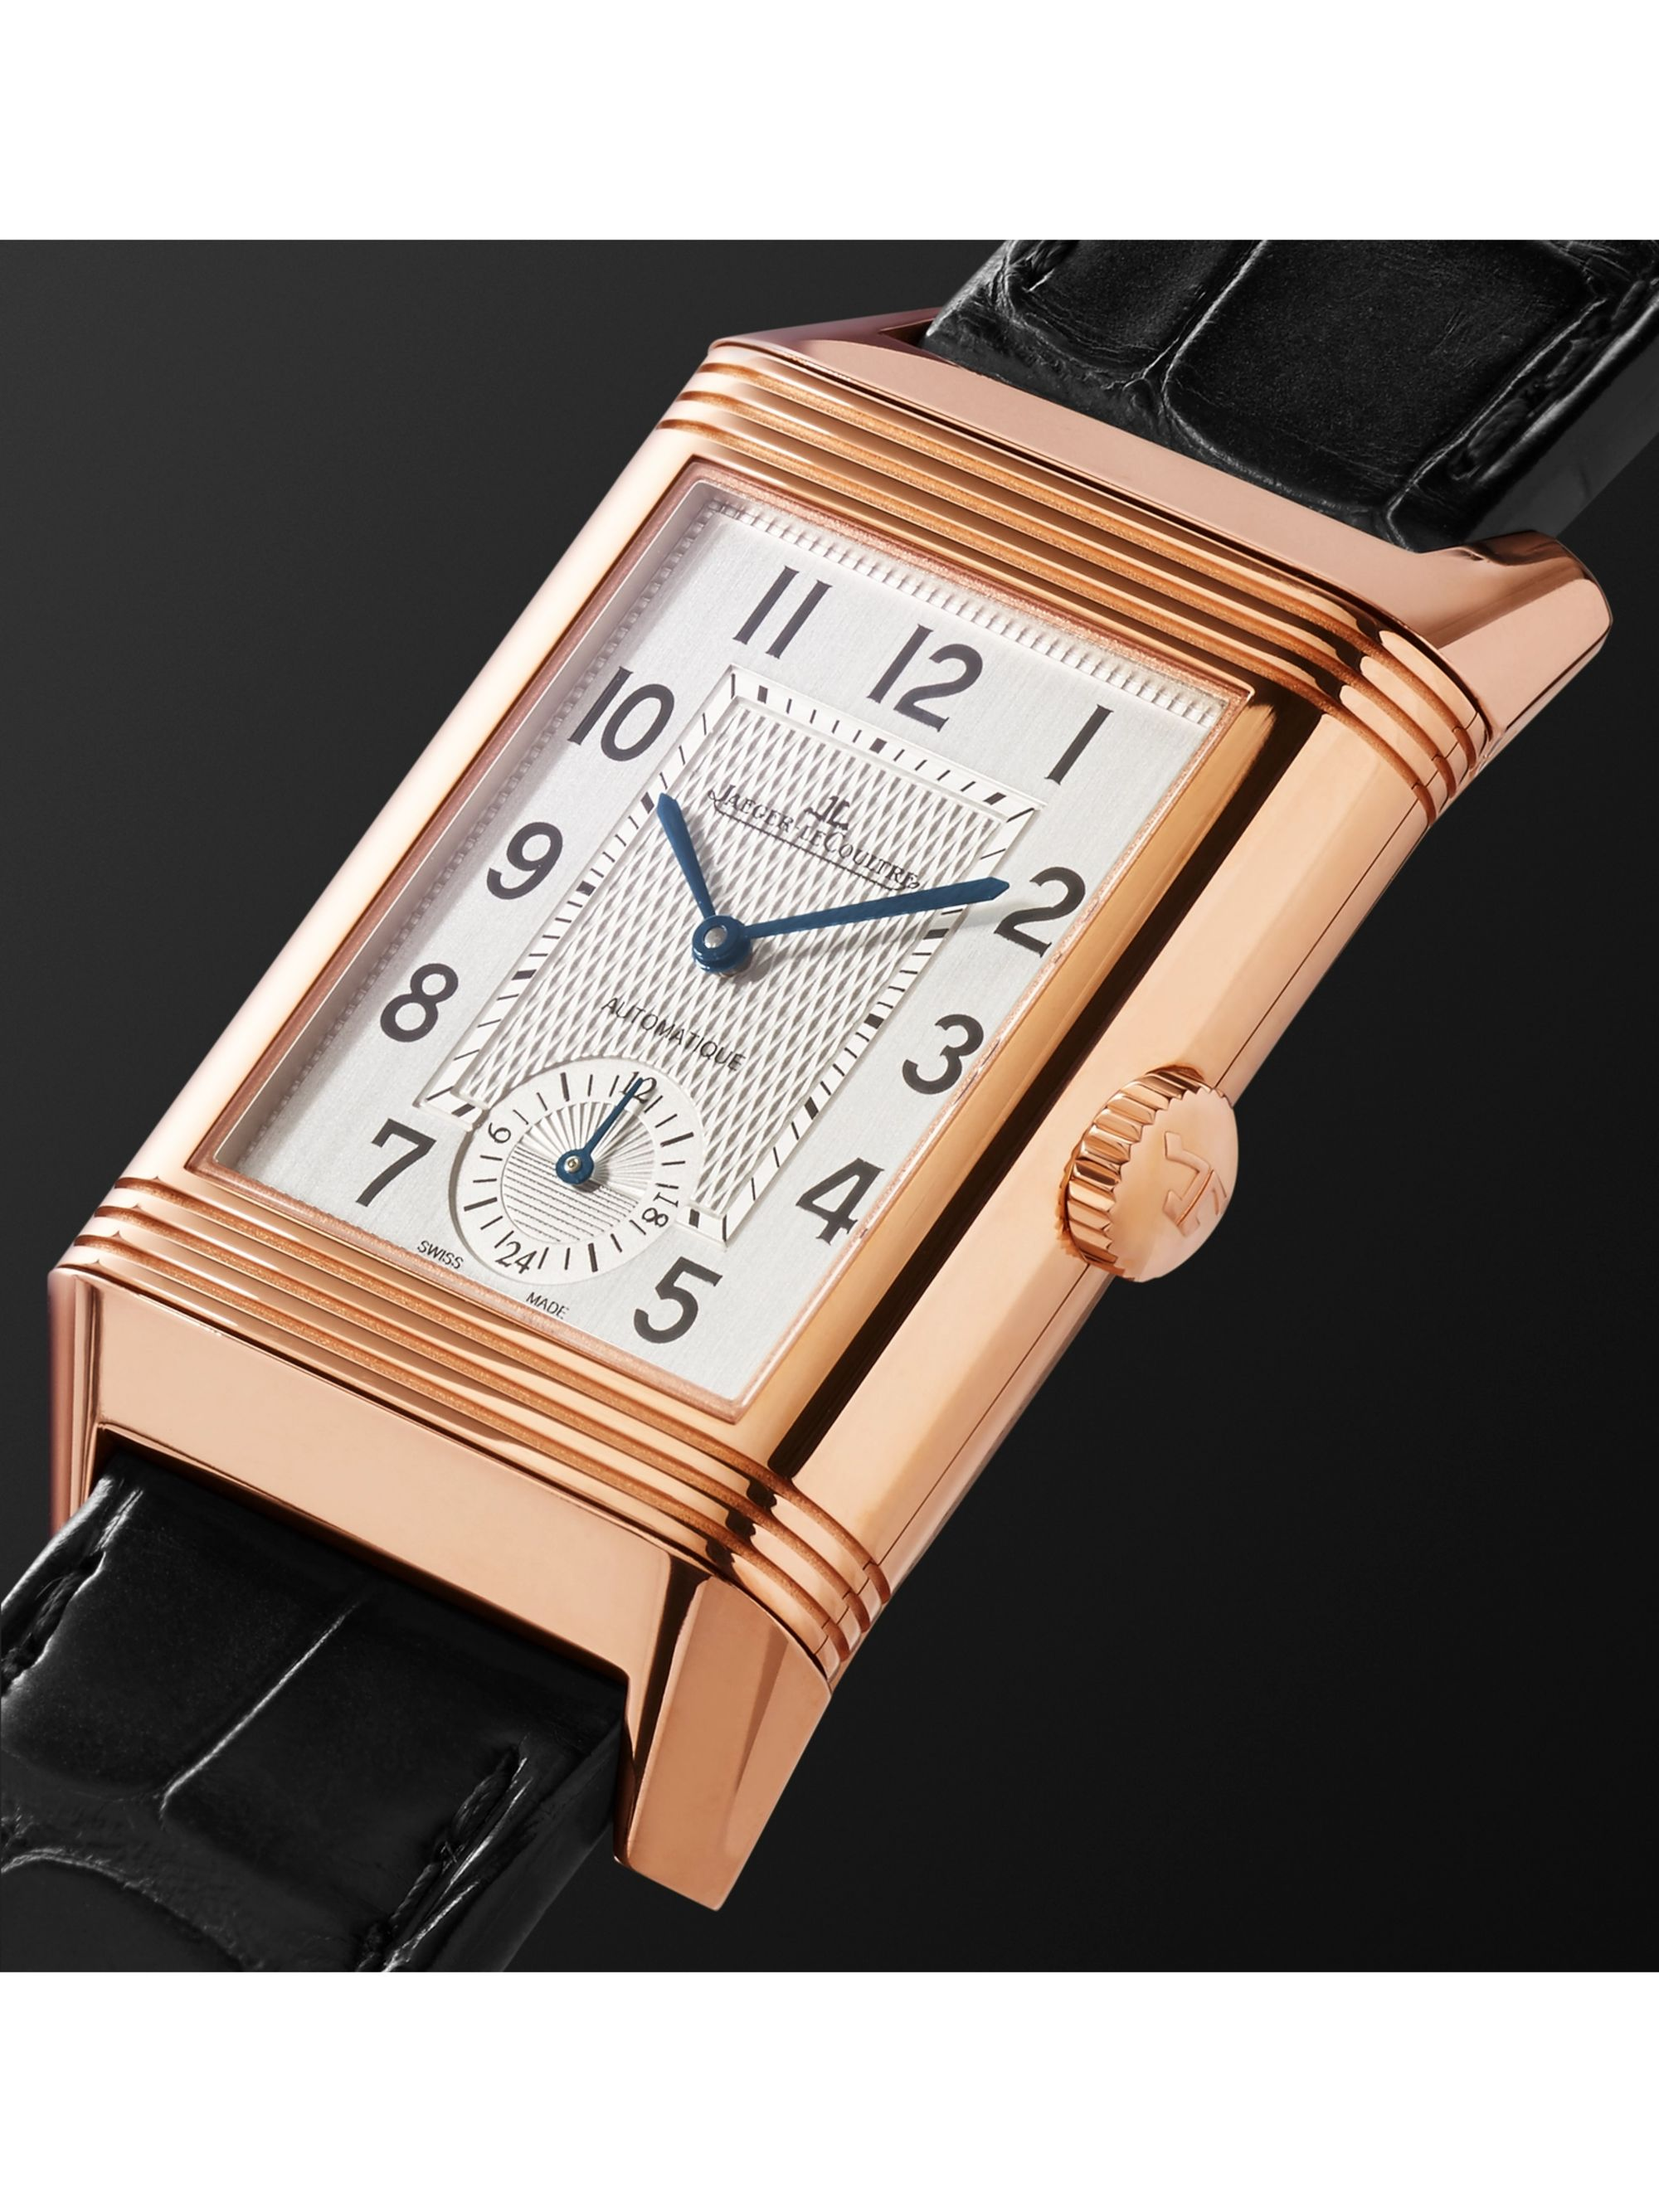 Jaeger-LeCoultre Reverso Classic Large Duoface Small Seconds Automatic 28.3mm Rose Gold and Alligator Watch